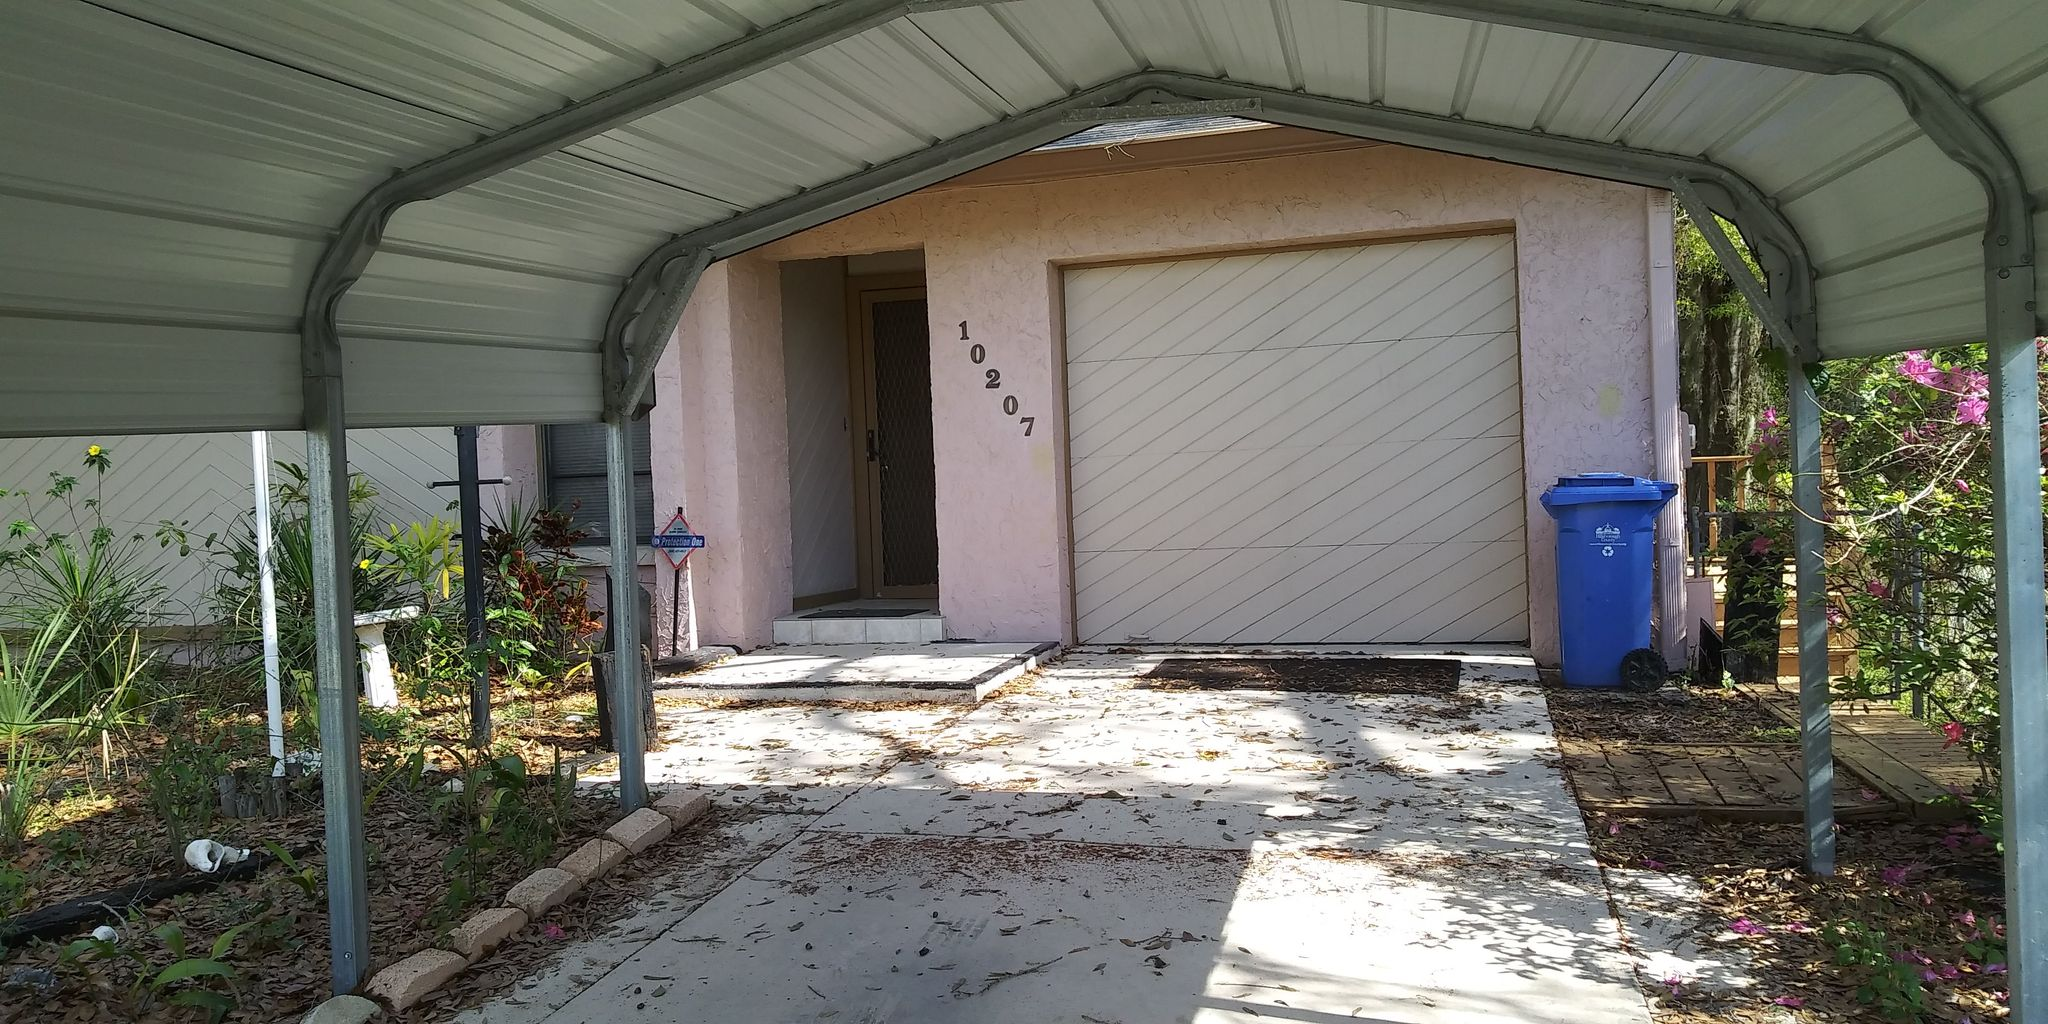 Garage Builders Tampa 10207 Oslin St Tampa Fl 33615 3 Bed 2 Bath Single Family Home 21 Photos Trulia